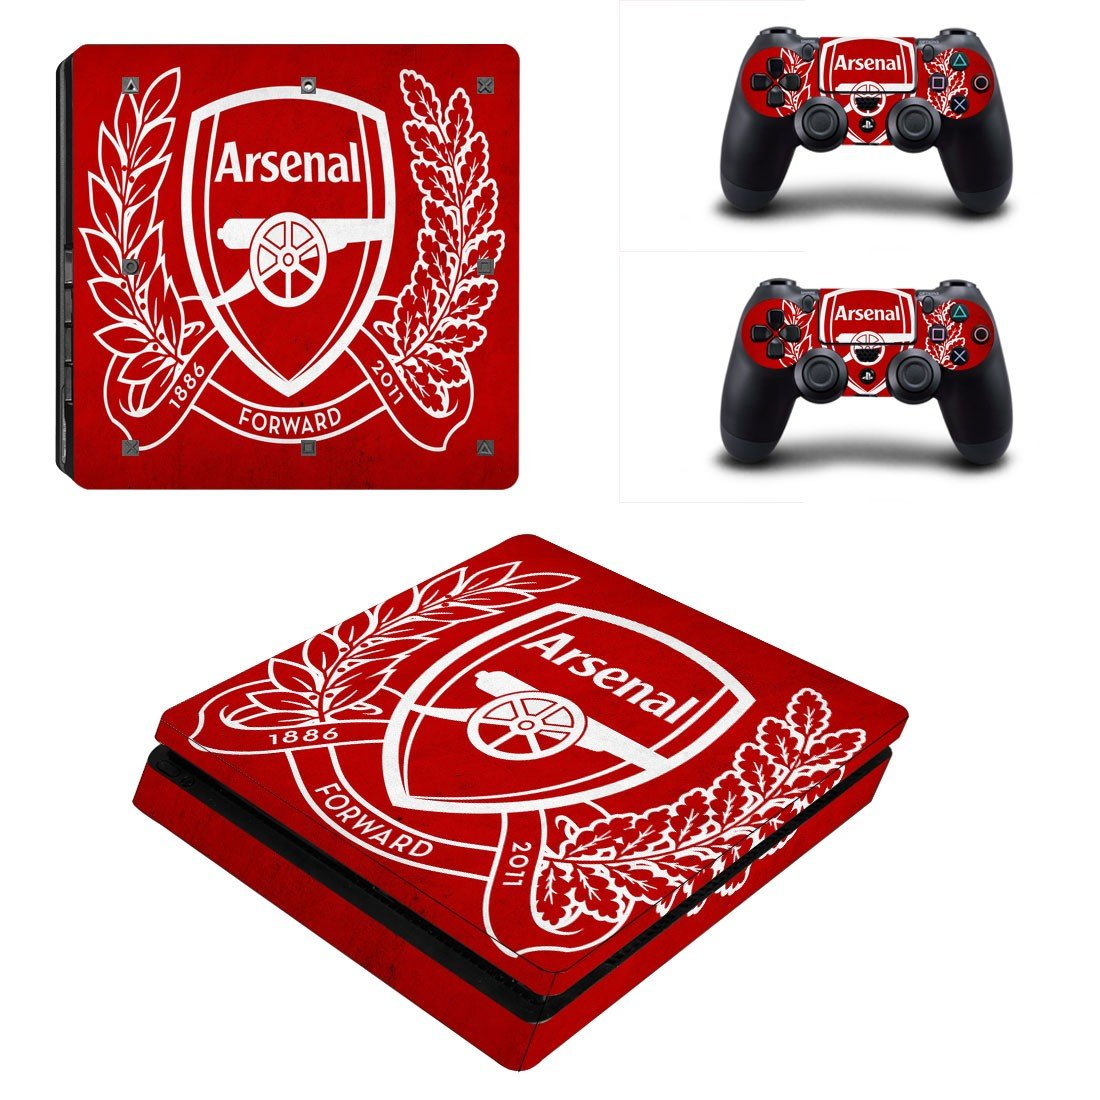 Arsenal F.C. Play Station 4 slim skin decal for console and 2 controllers